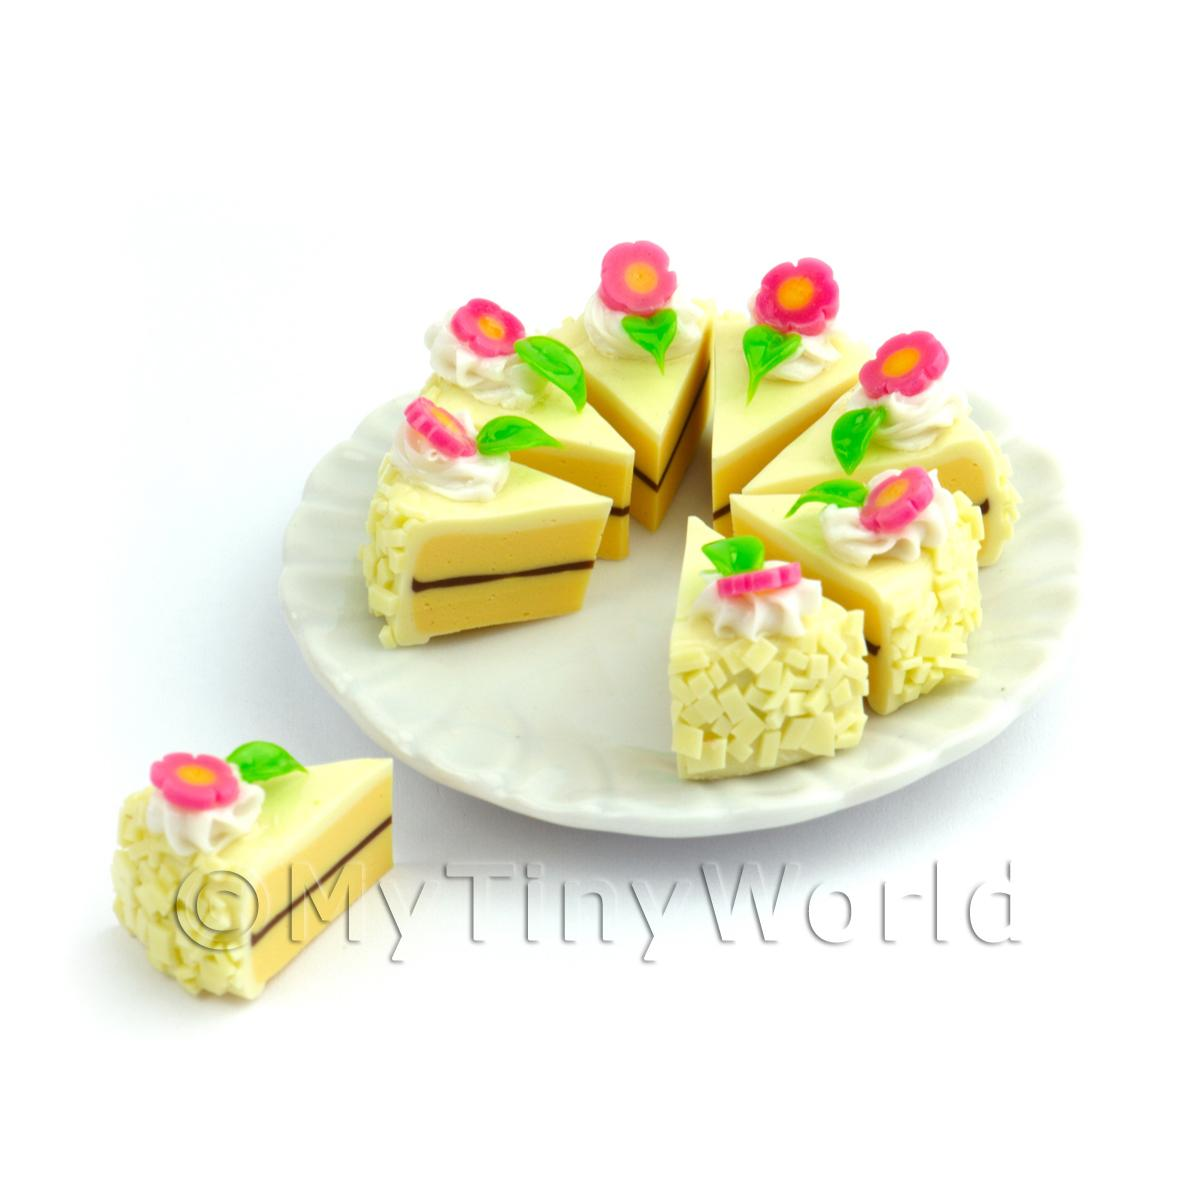 Dolls House Miniature Whole Sliced Vanilla Flower Cake